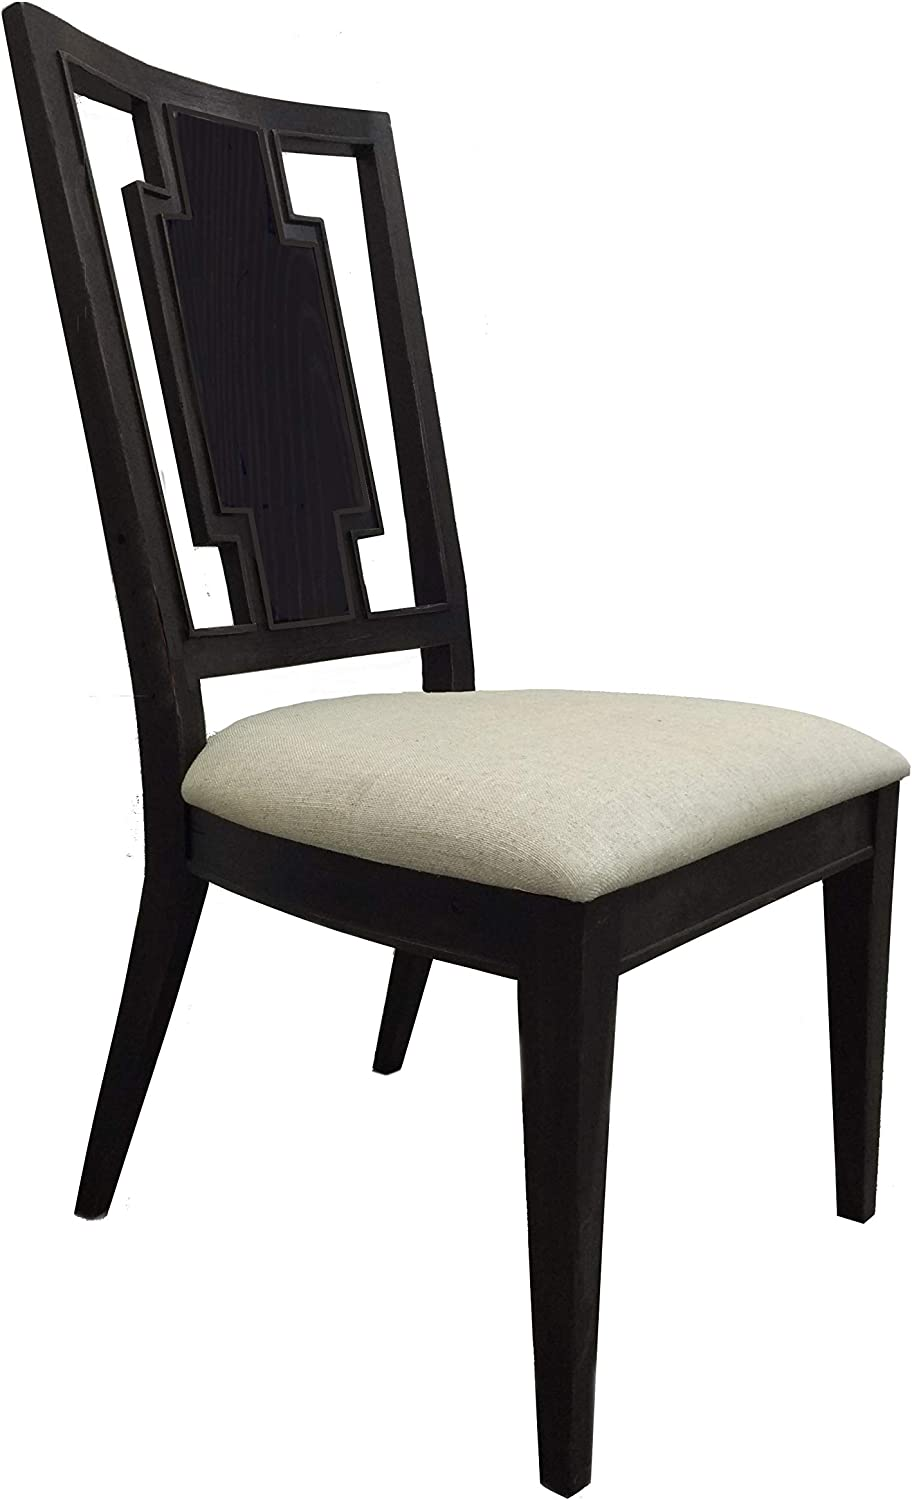 Furniture At Home Weston Side Chair, Black with Golden Brown